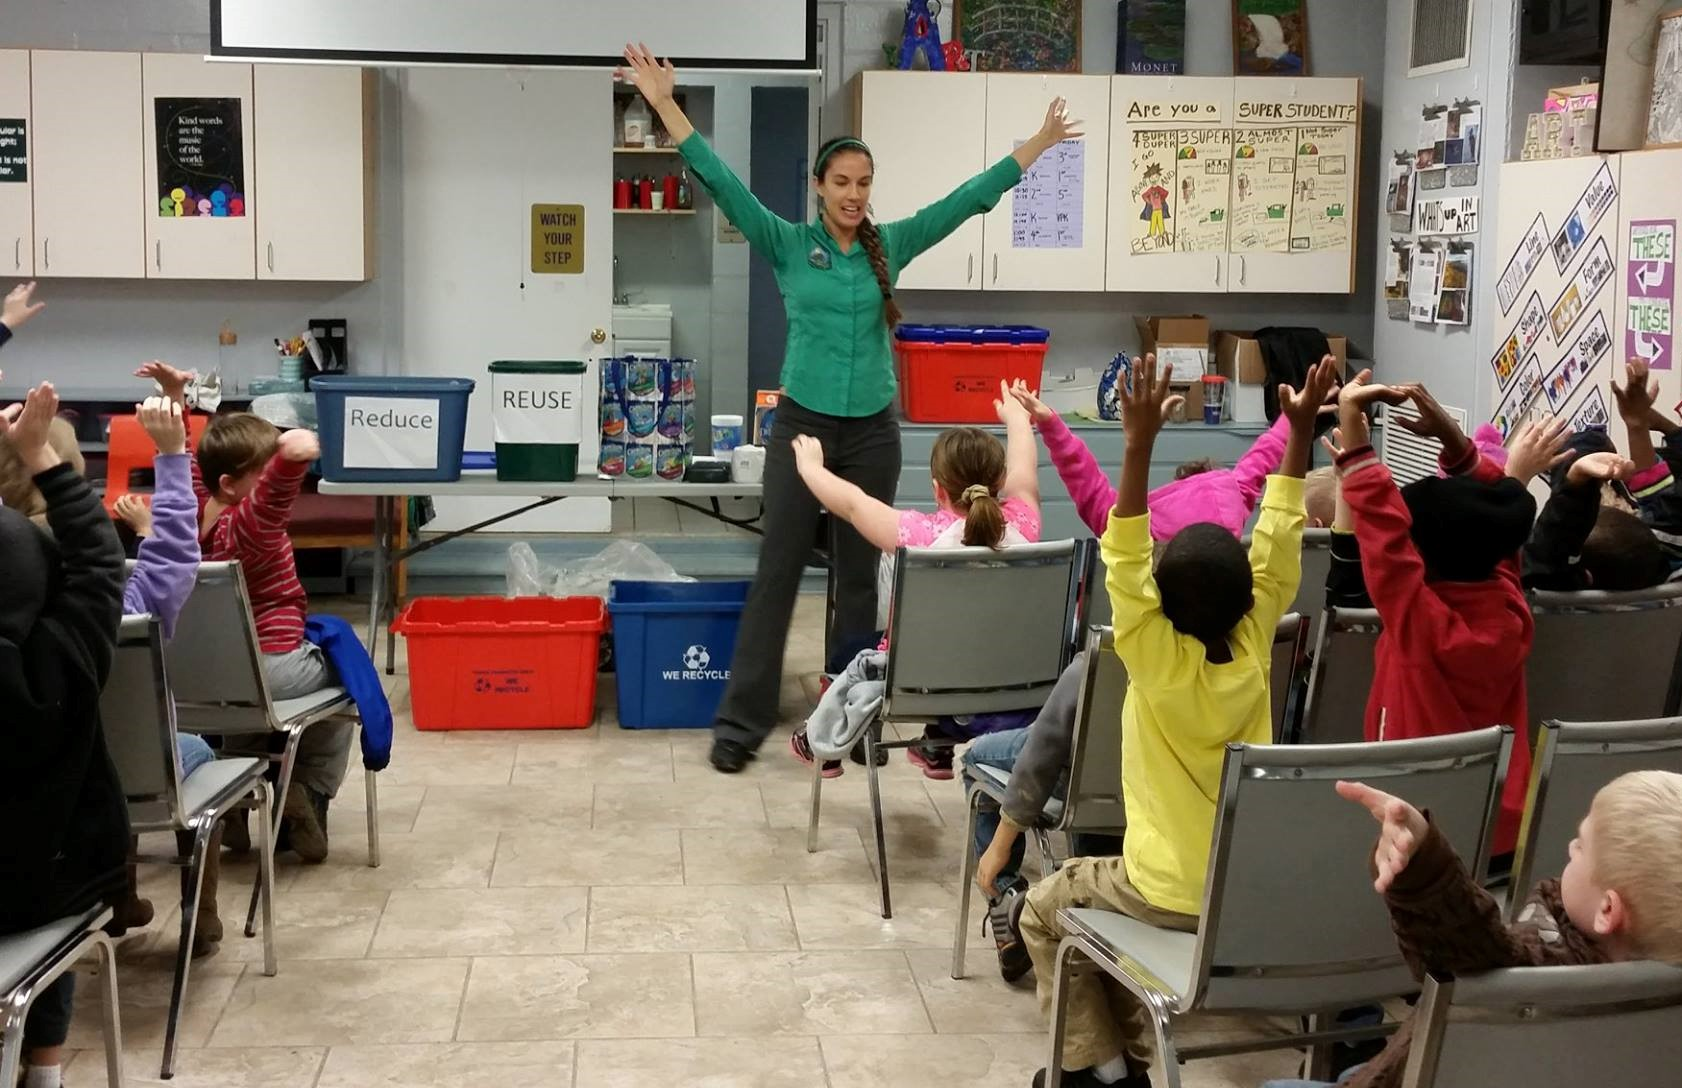 Alachua County employee giving a recycling presenttion to local schoolchildren